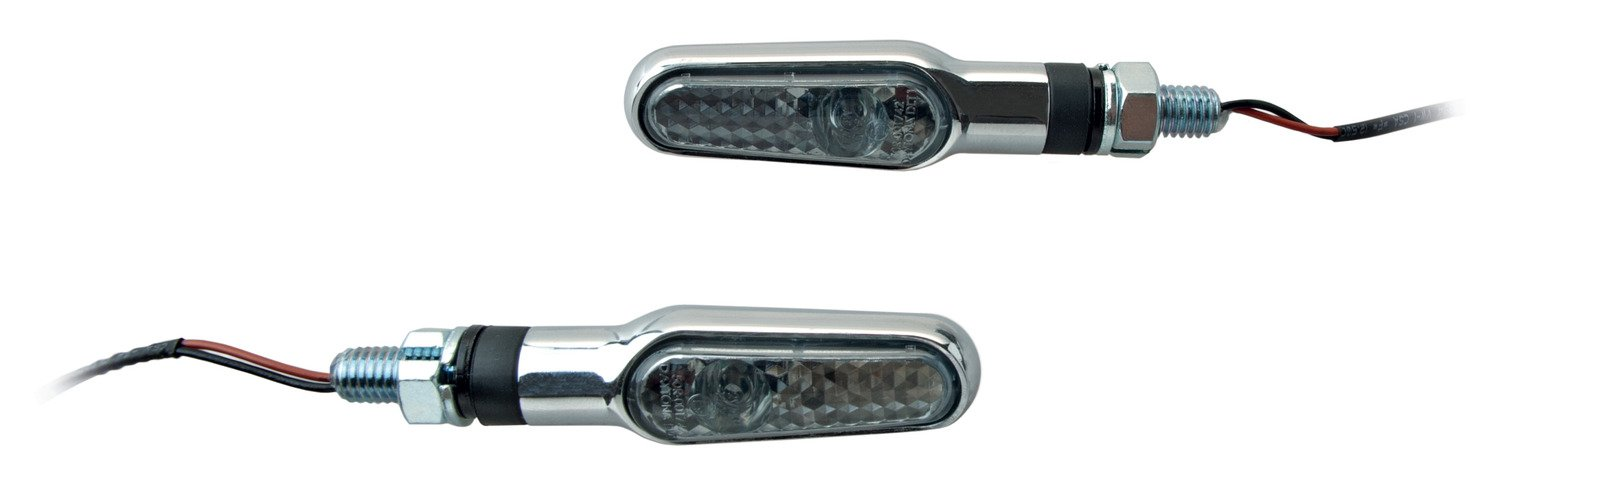 Daytona Chrome LED R/H & L/H Turn Signal Set